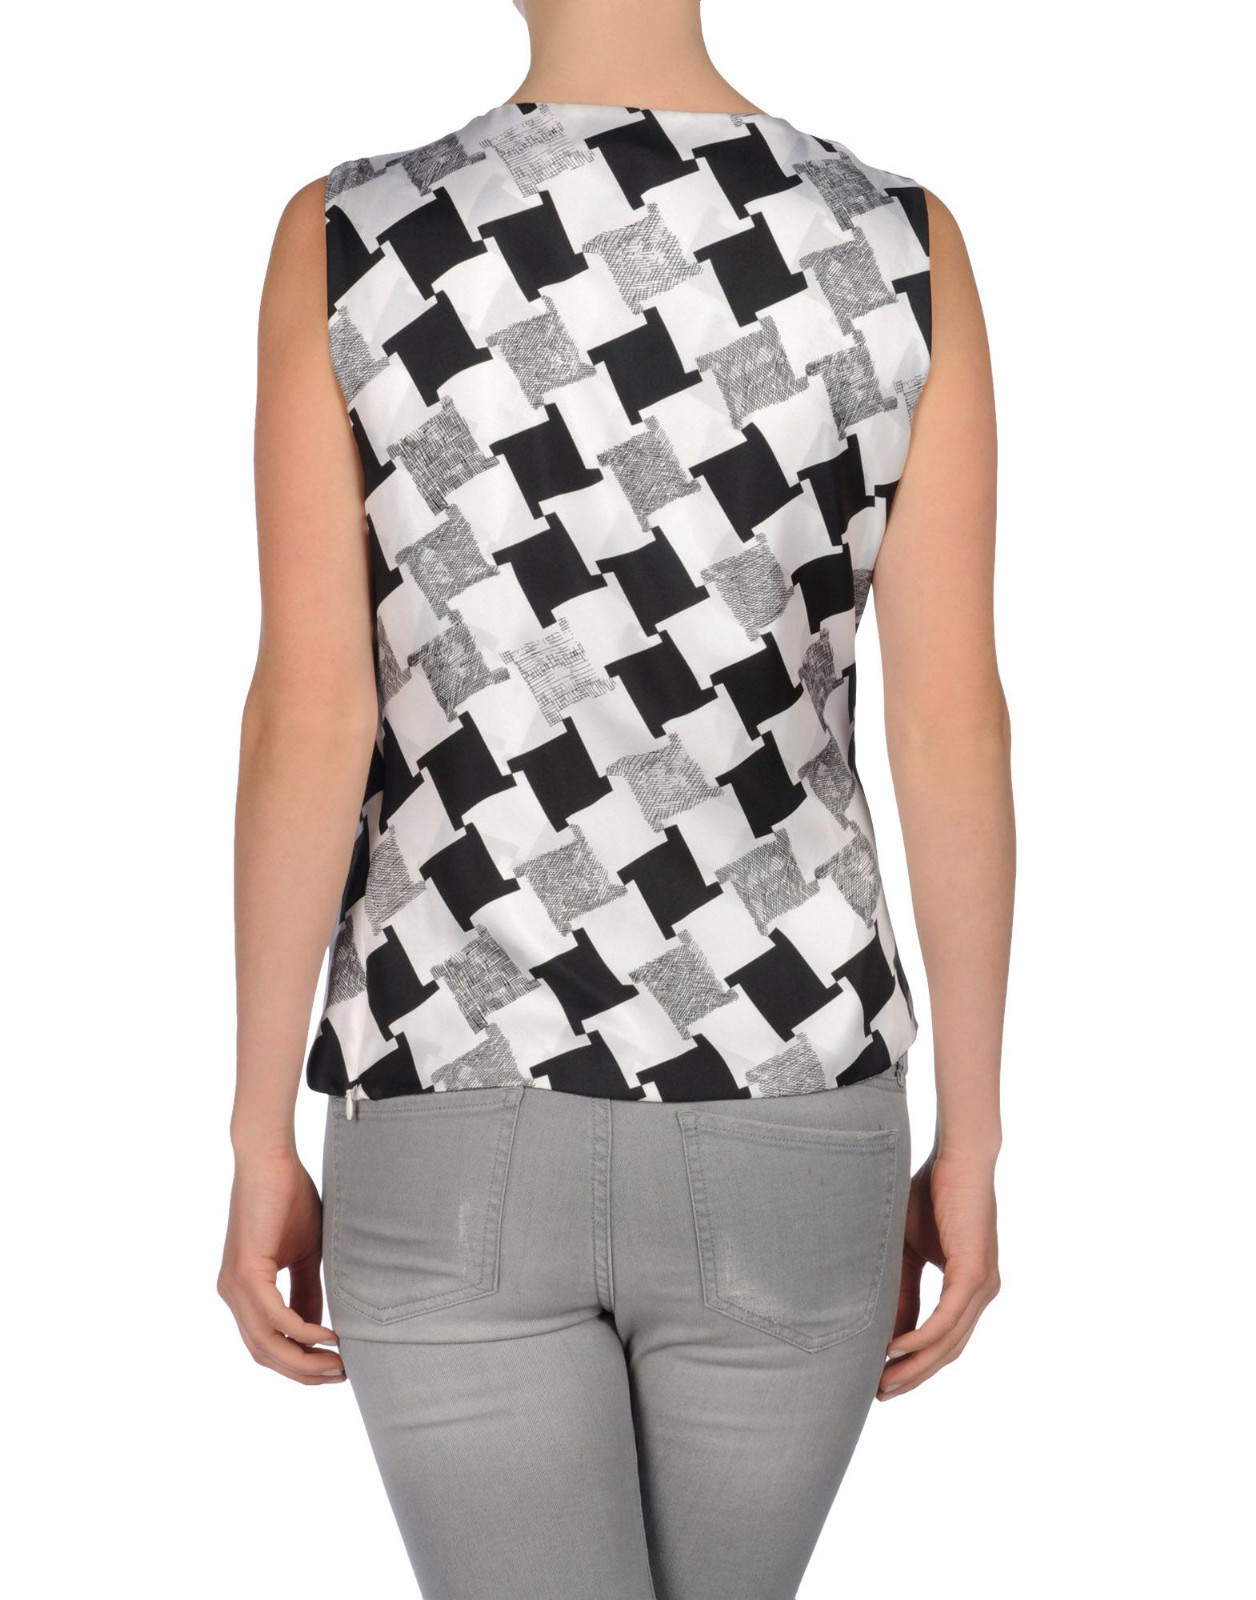 DIANE von FURSTENBERG LEALA CHECK WEAVE GREY TOP BLOUSE - US 10 - UK 14 image 3